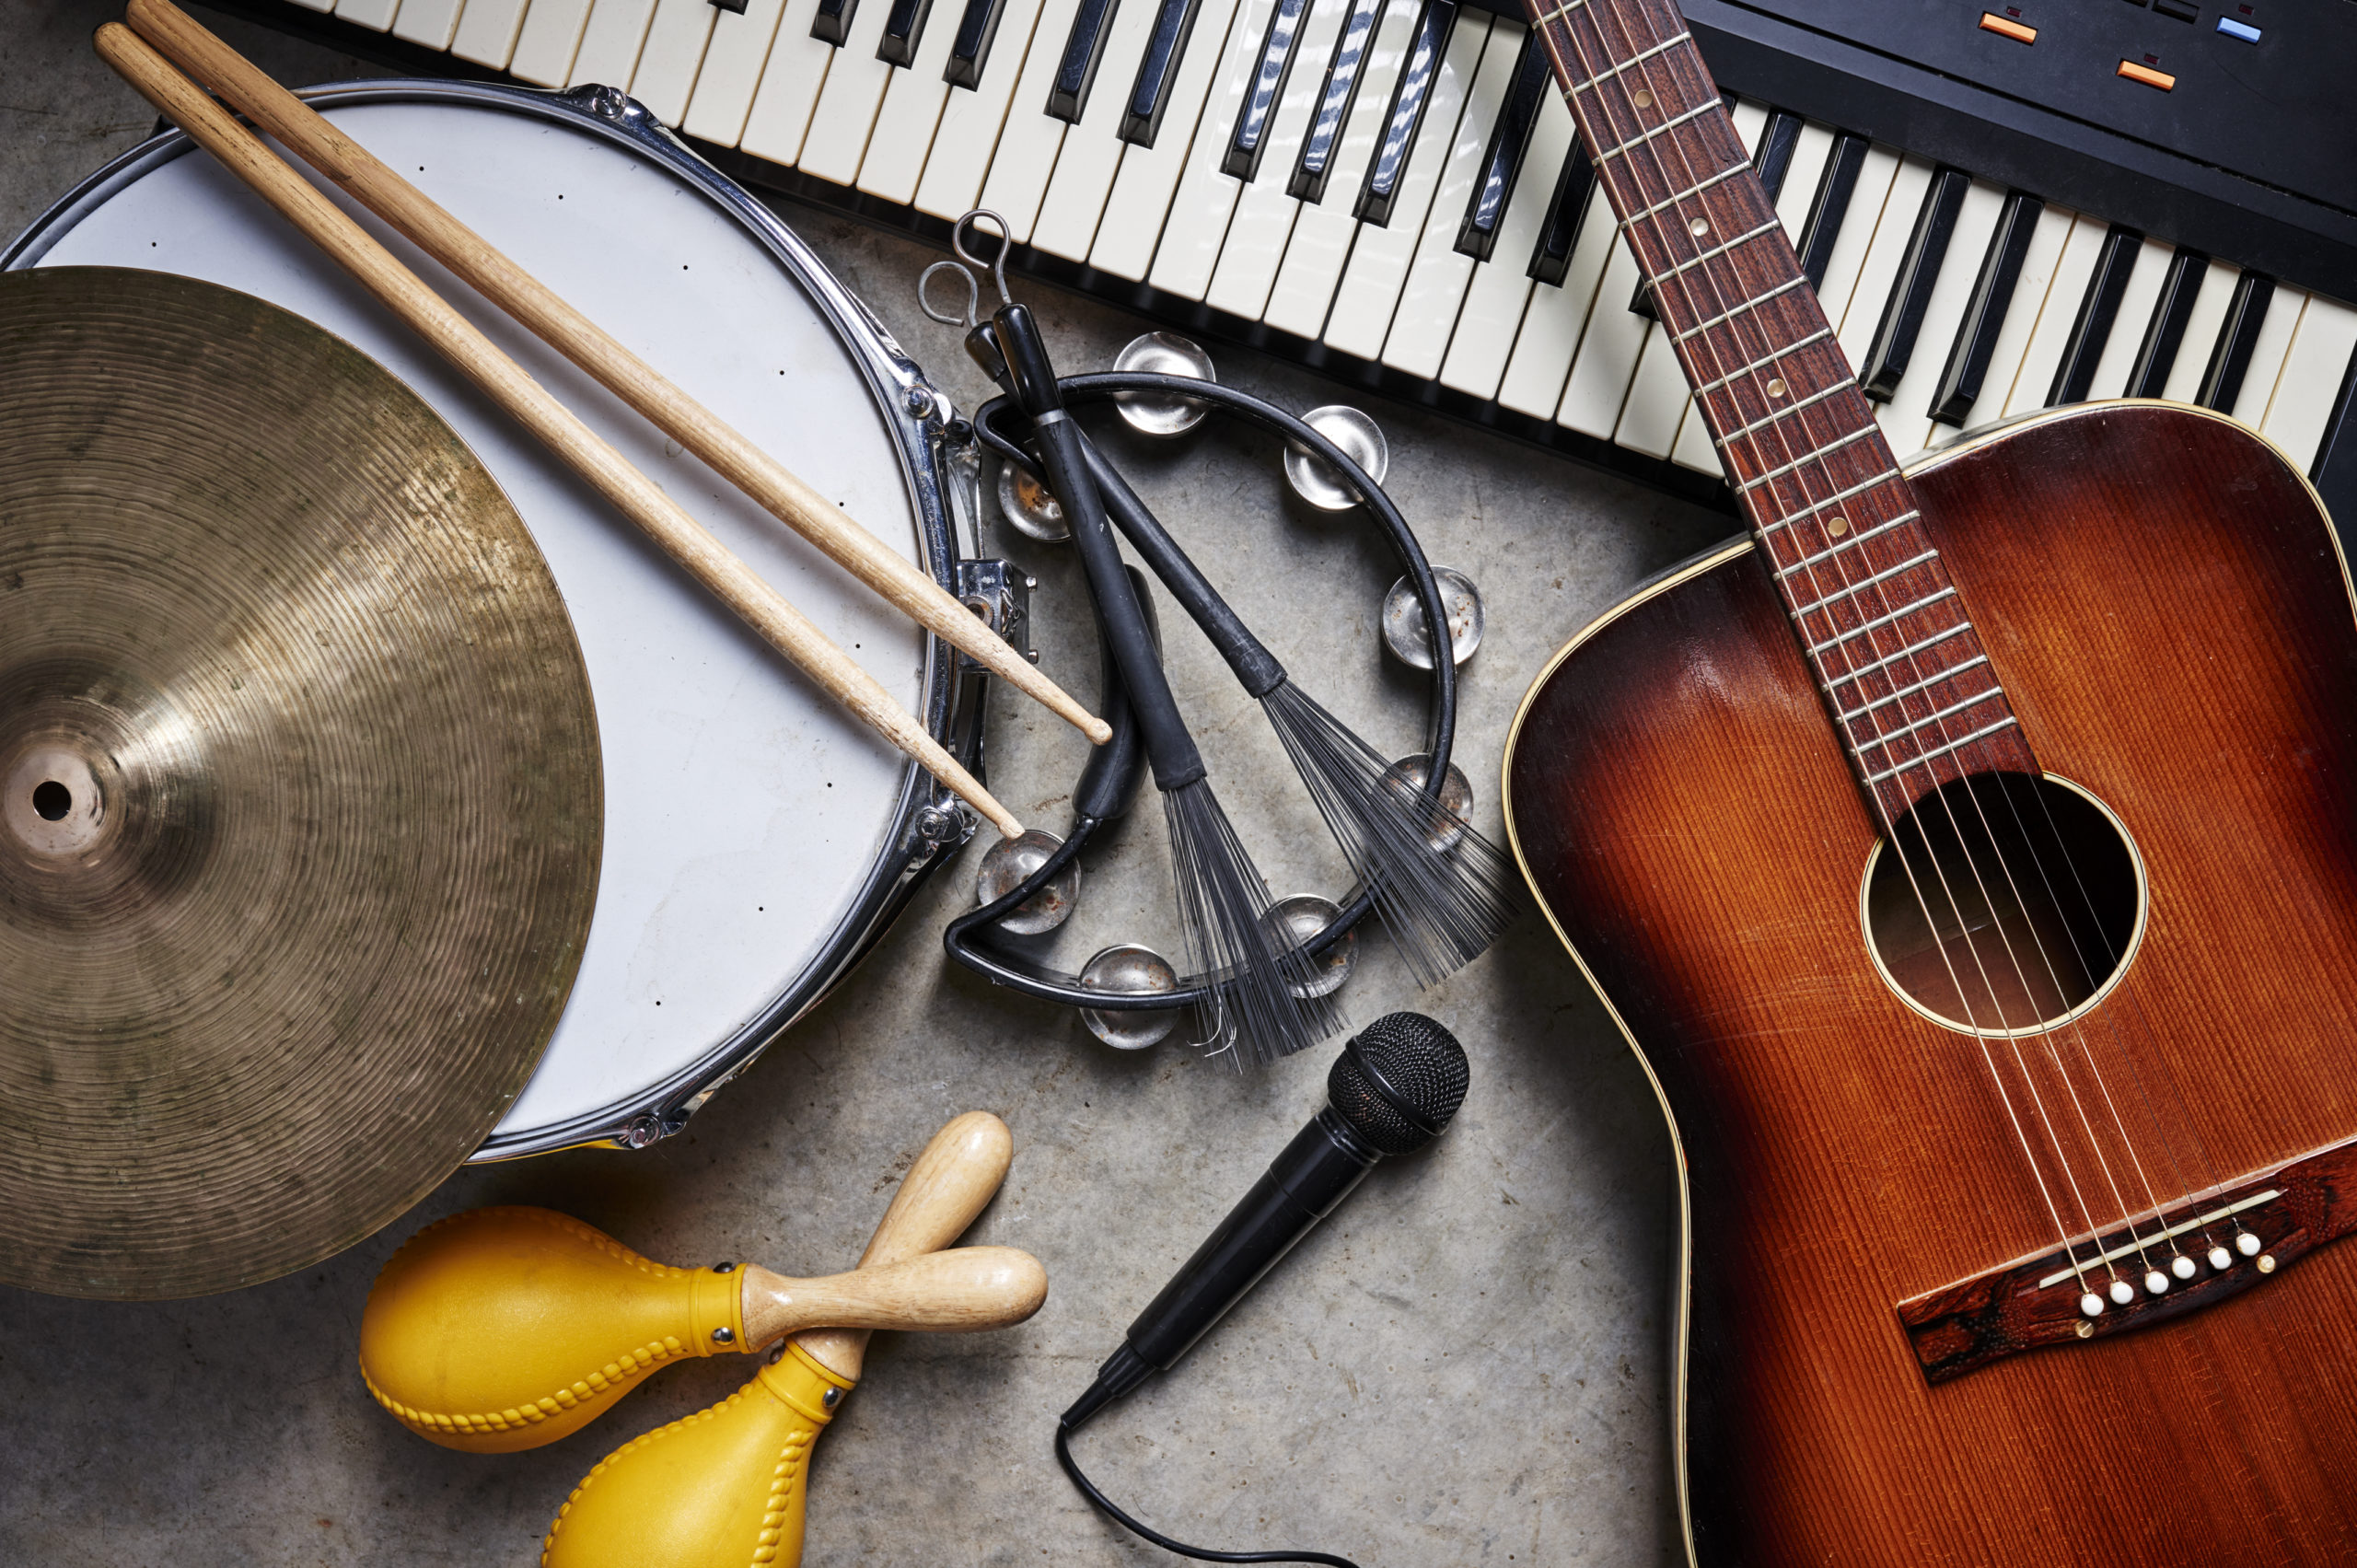 It's National Buy an Instrument Day – why is this cool?